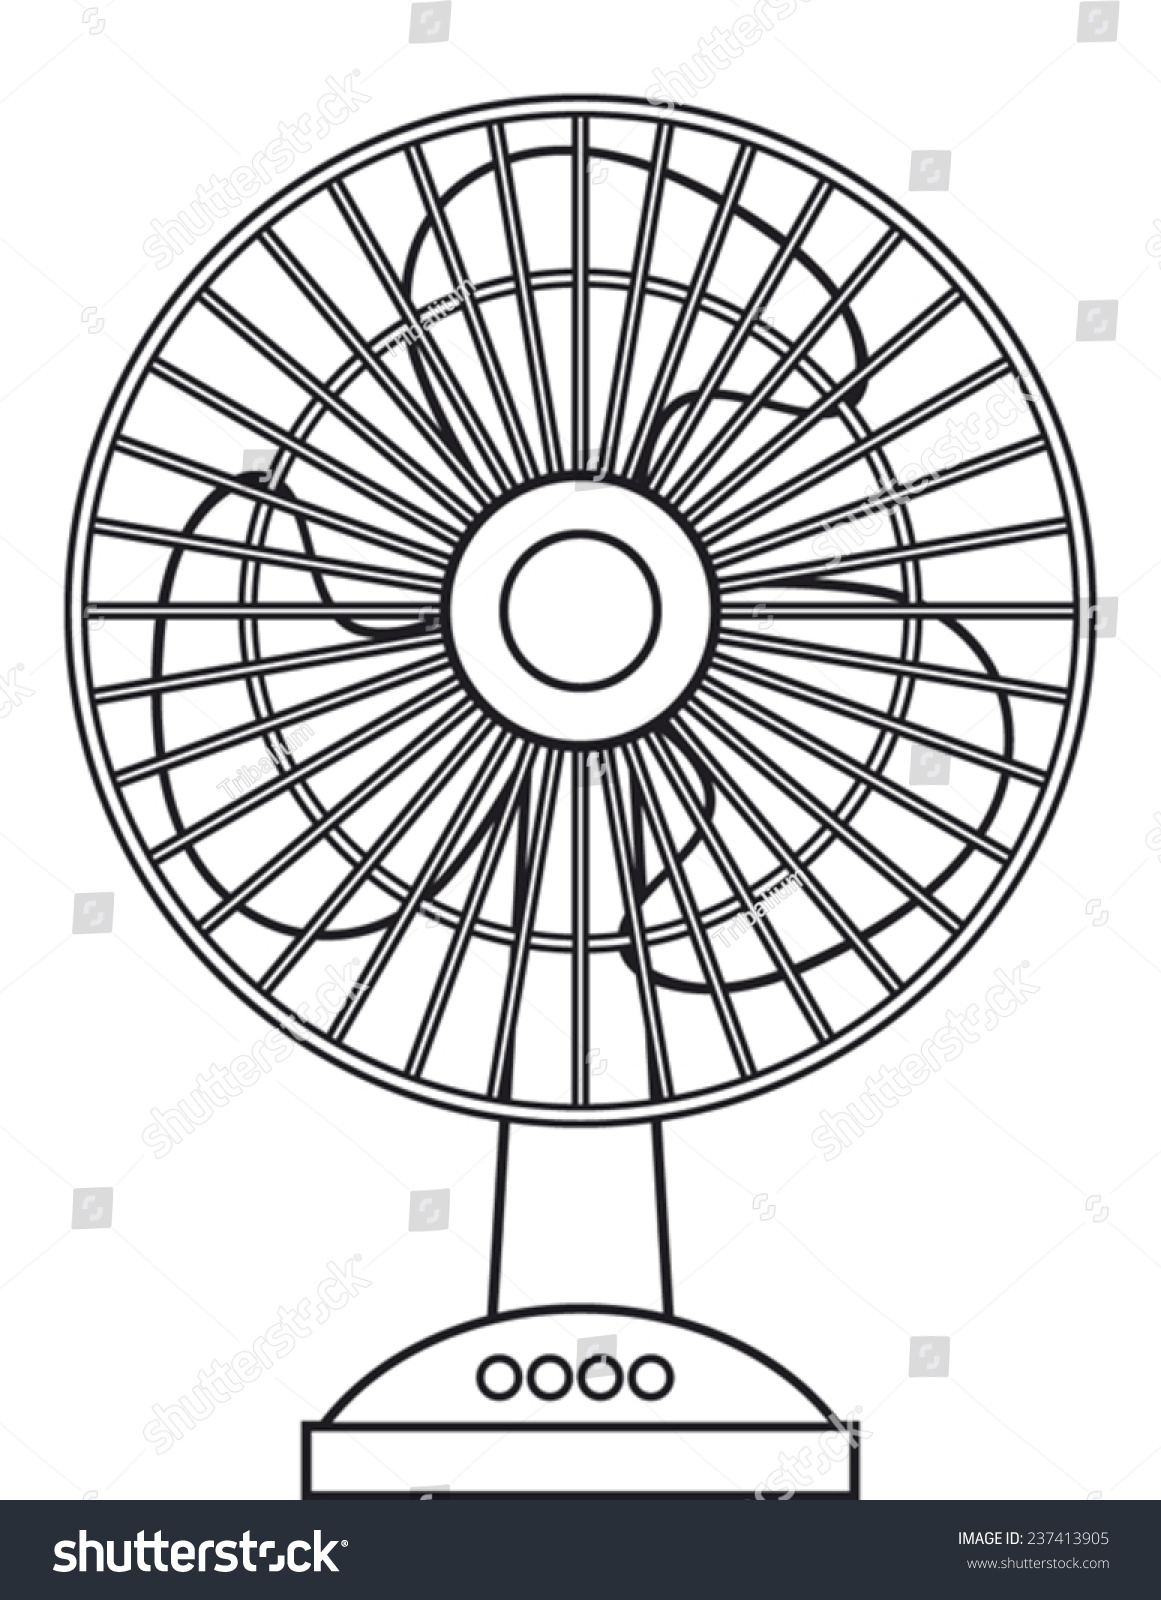 A Sketch Of A Electric Fan : Table fan for the home and office electric